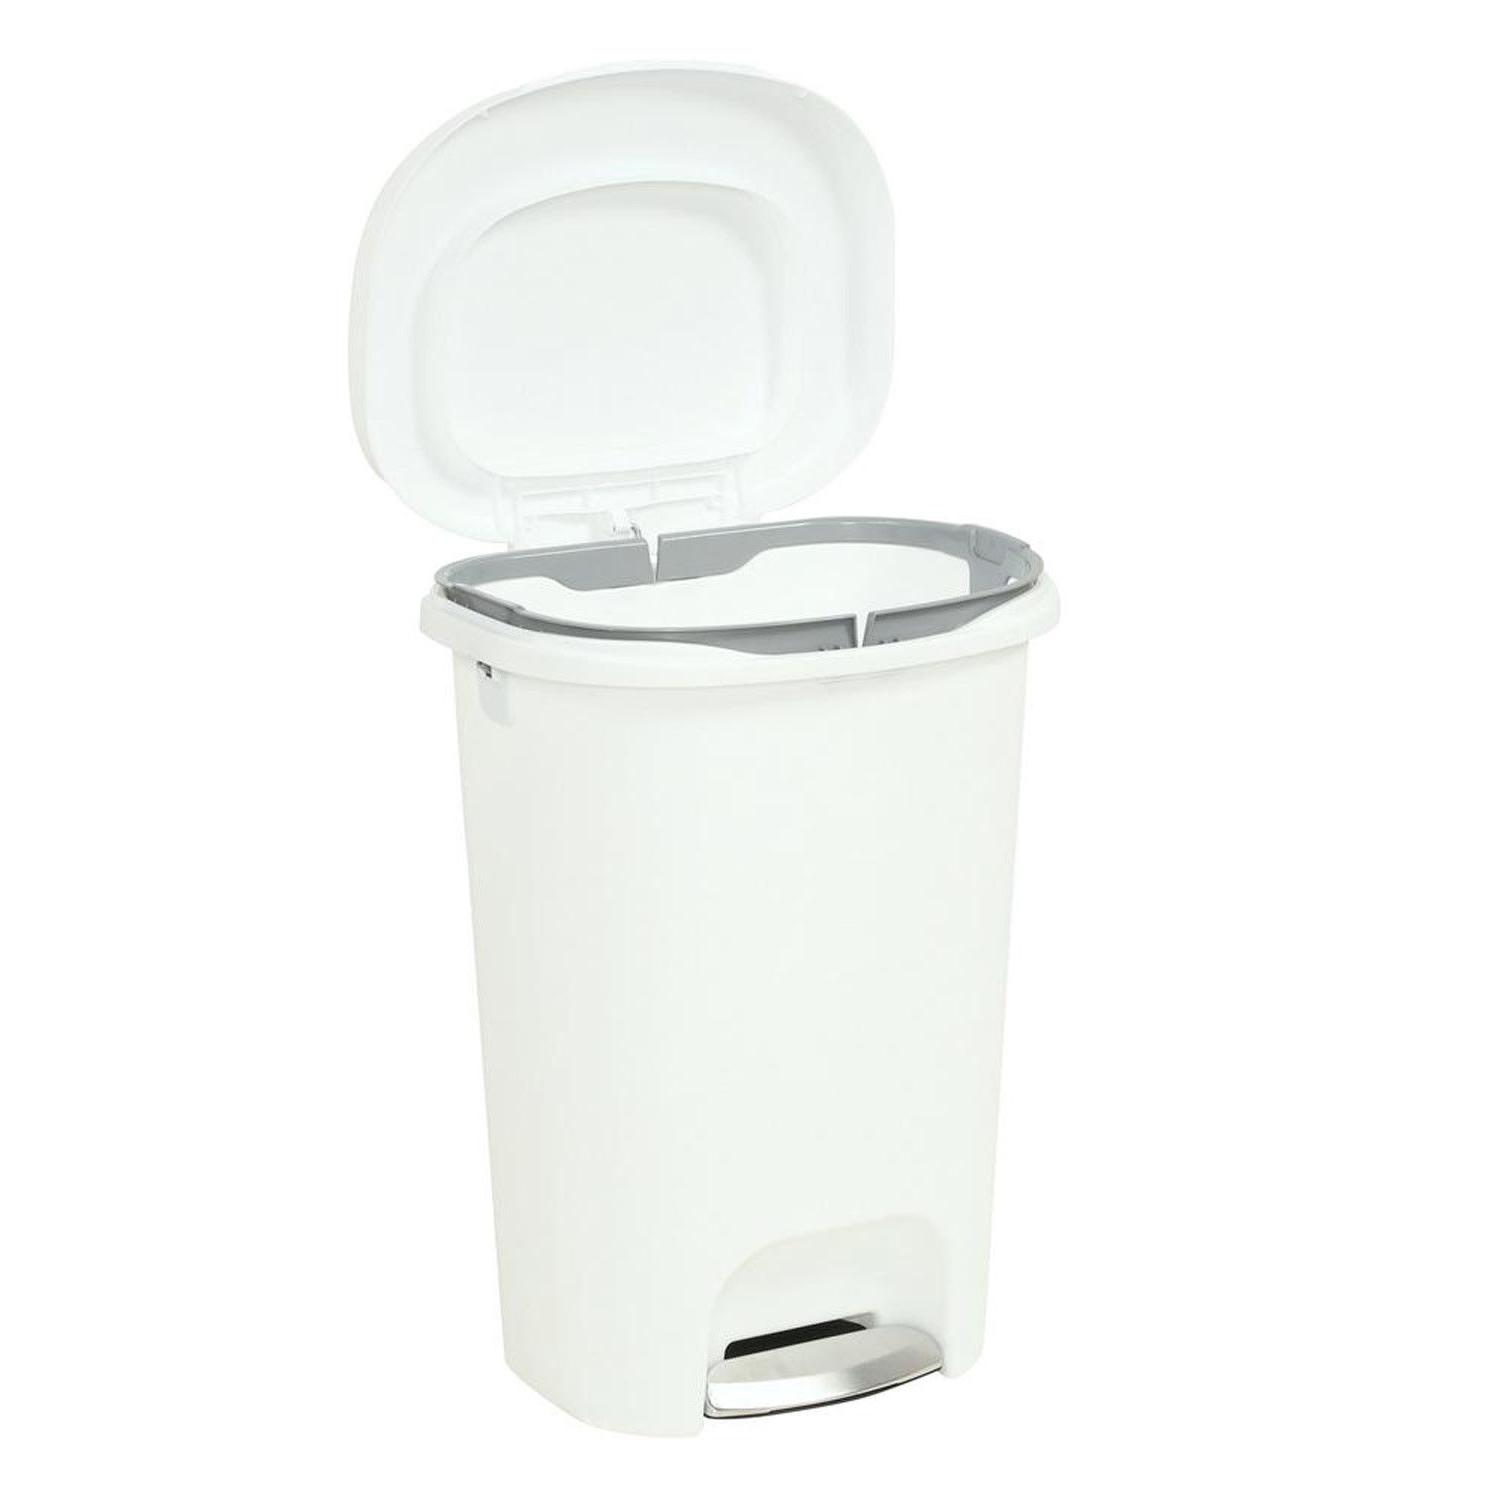 Rubbermaid Rubbermiad Premium On Can